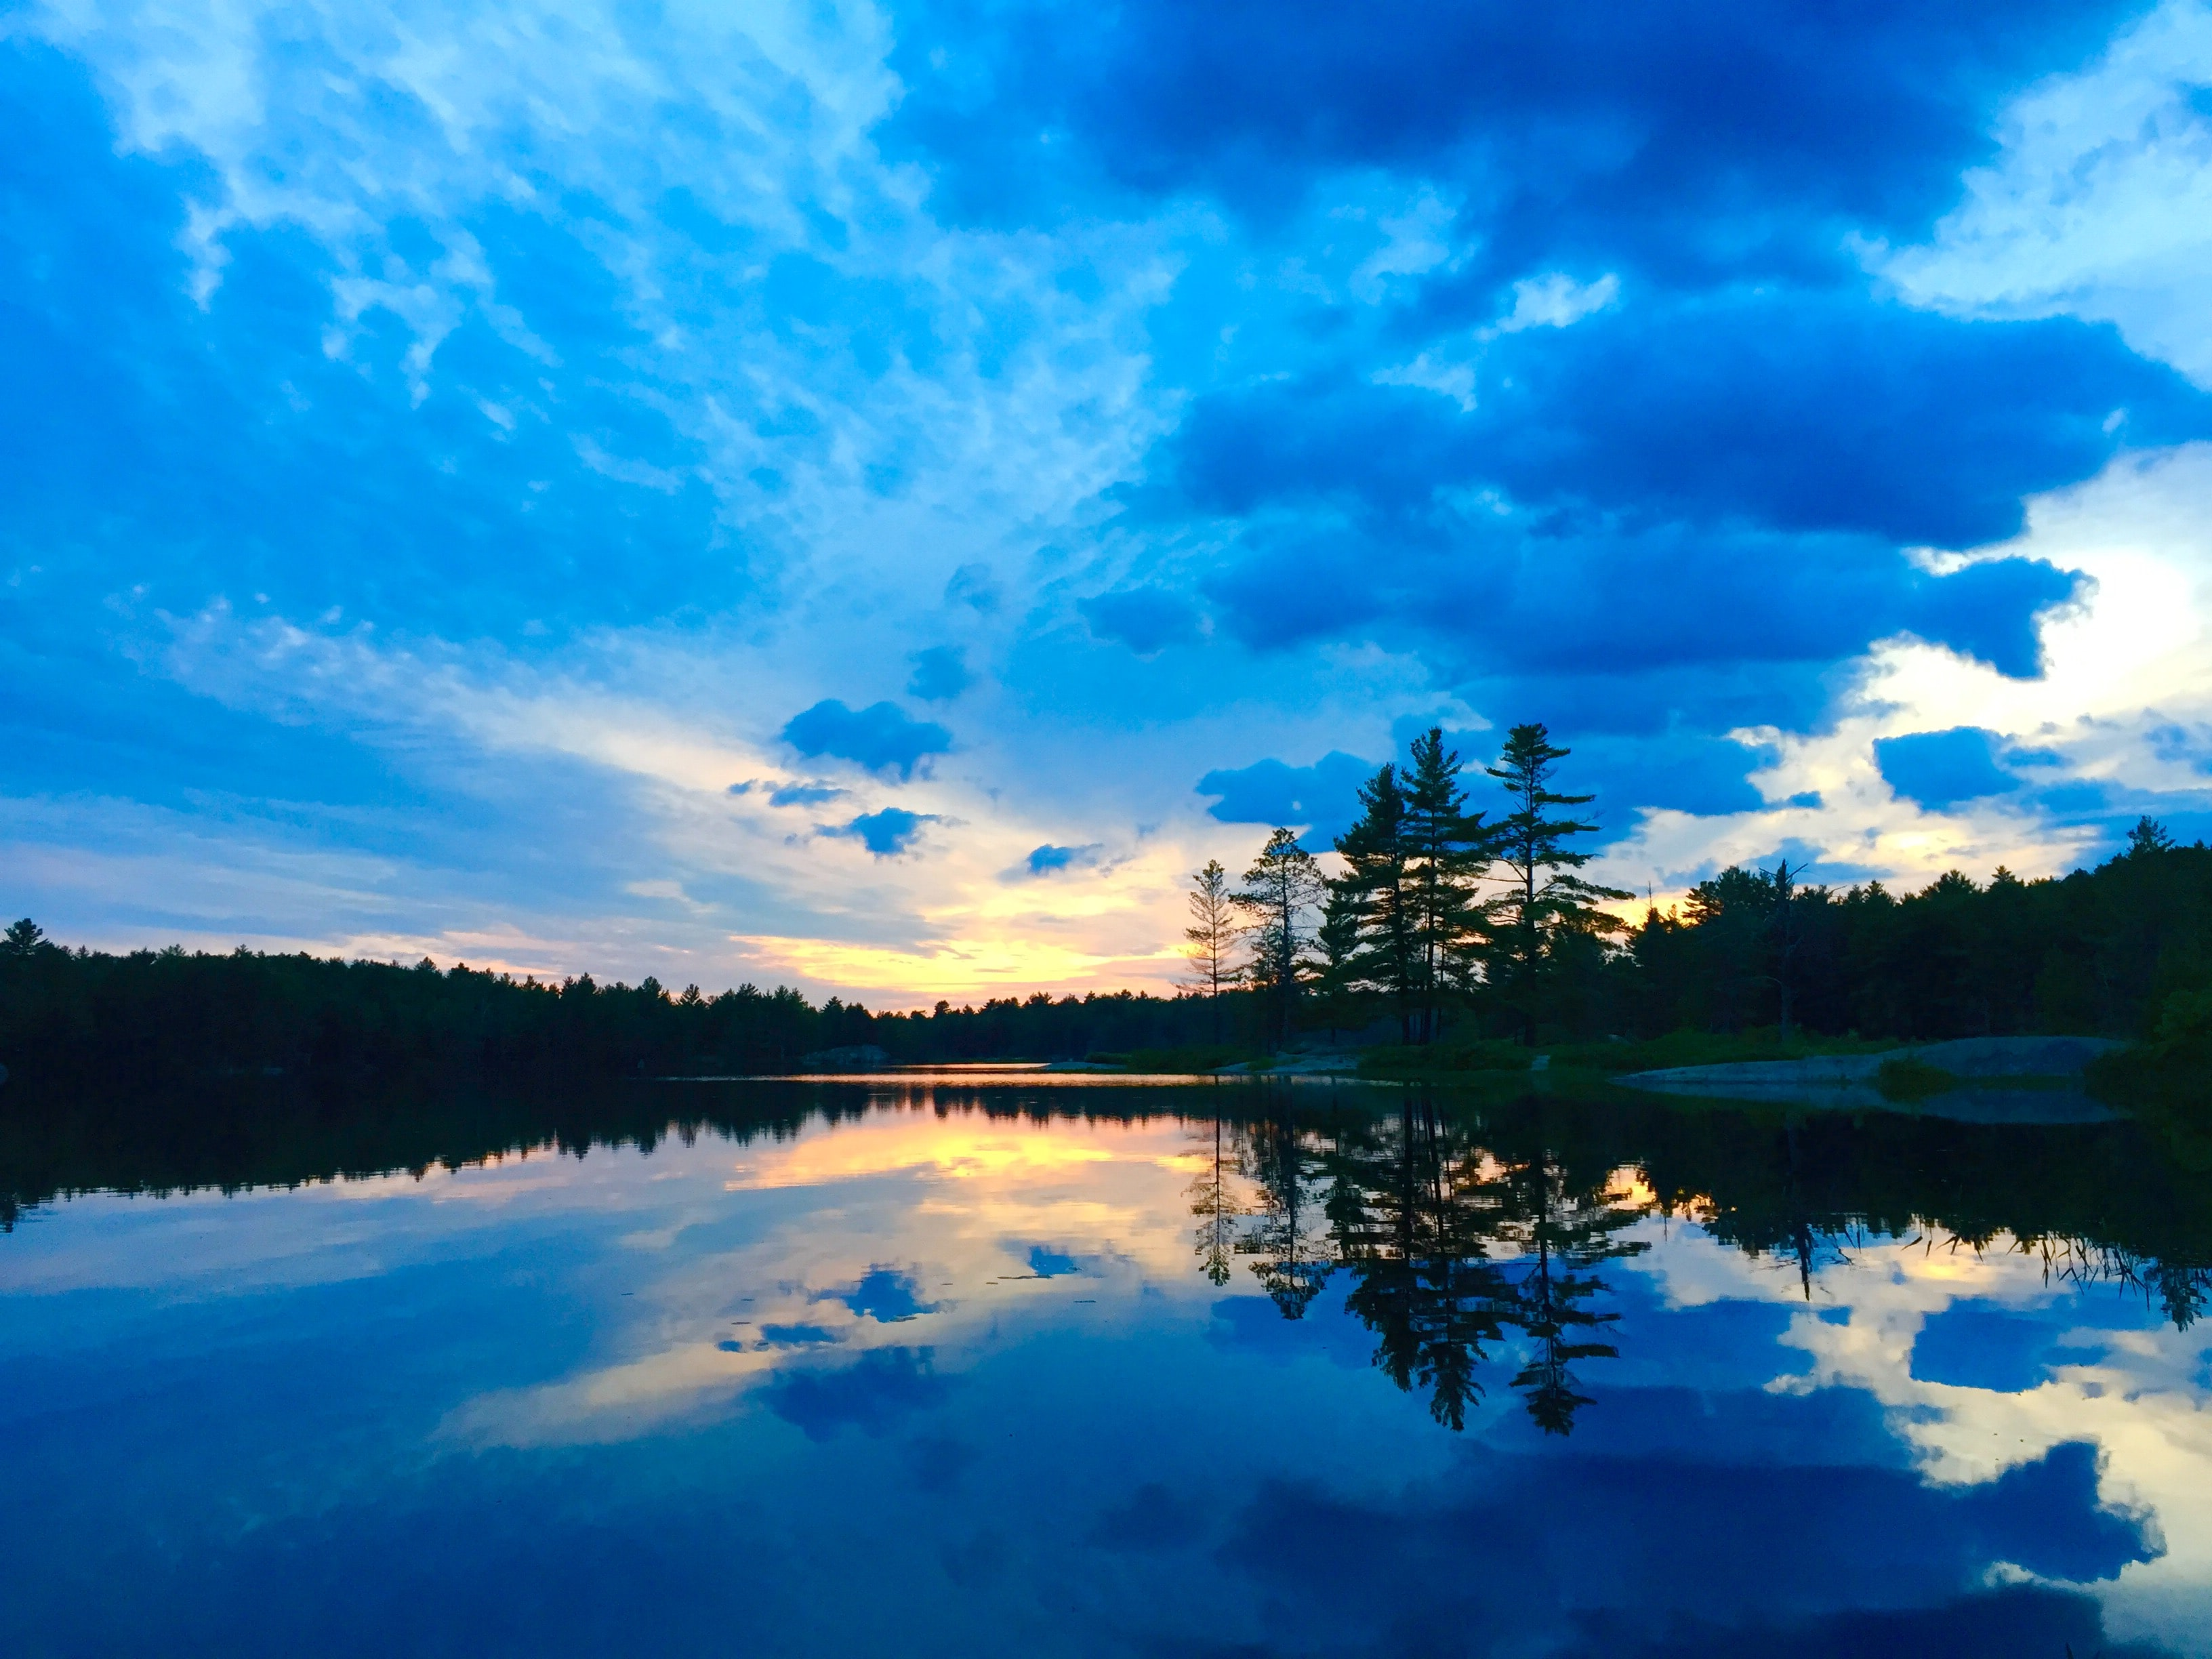 A bright blue cloudy sky and its reflection in a lake at Kawartha Highlands Provincial Park